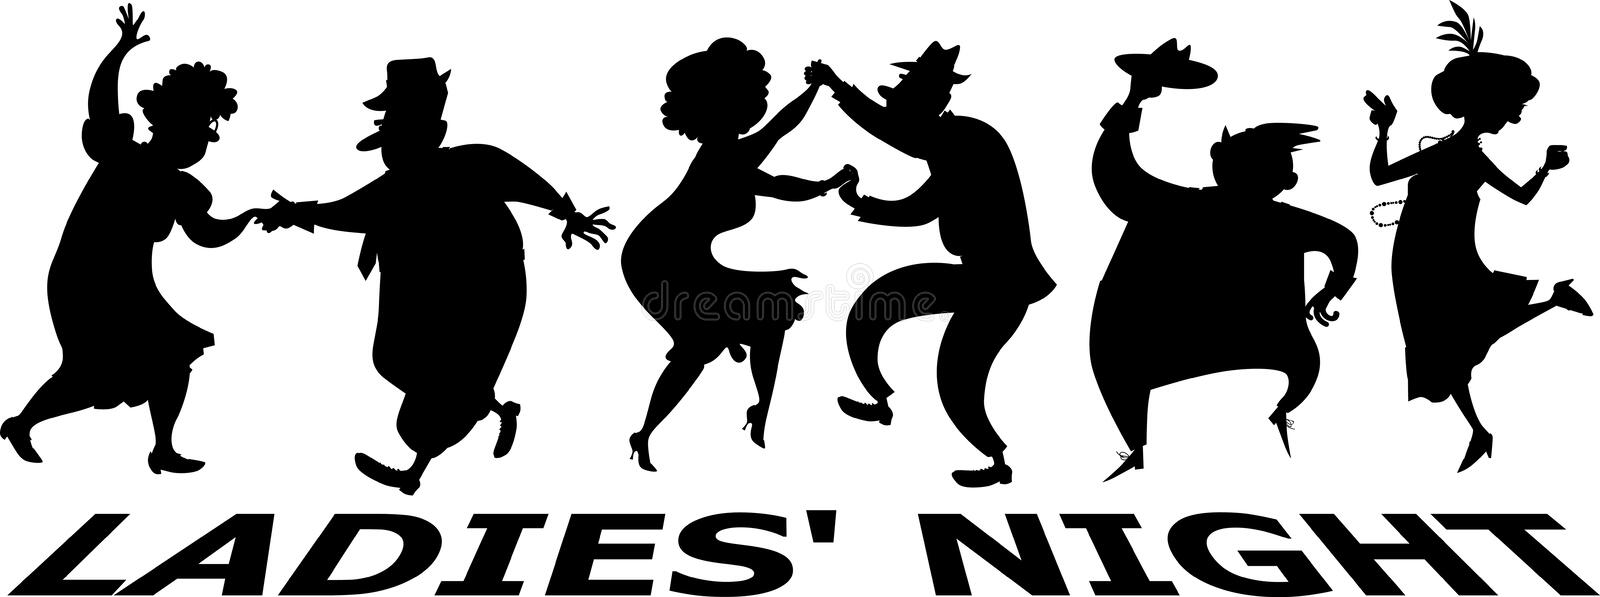 Silhouette de la nuit des dames illustration stock